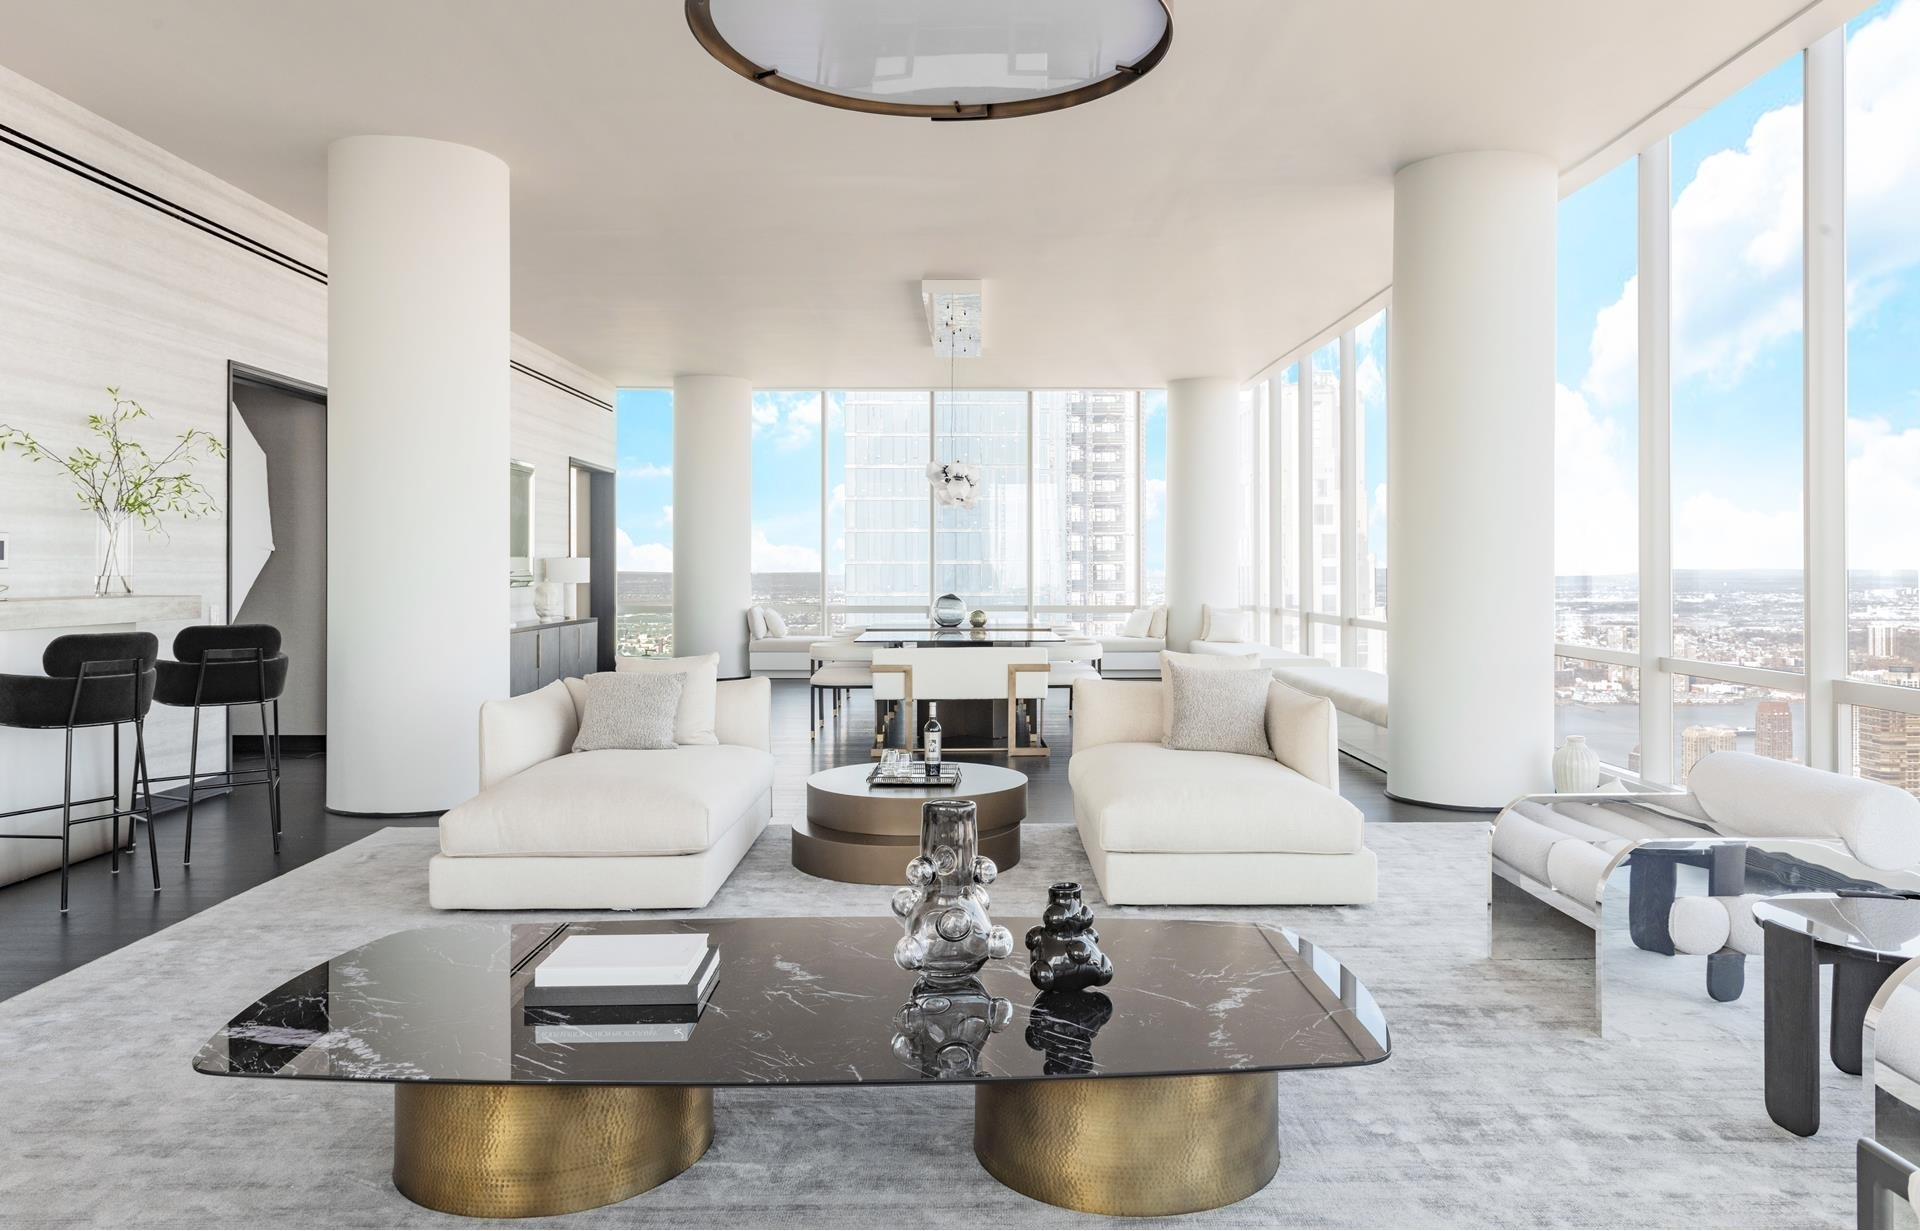 4. Condominiums for Sale at One57, 157 West 57th St, 87 Midtown West, New York, NY 10019